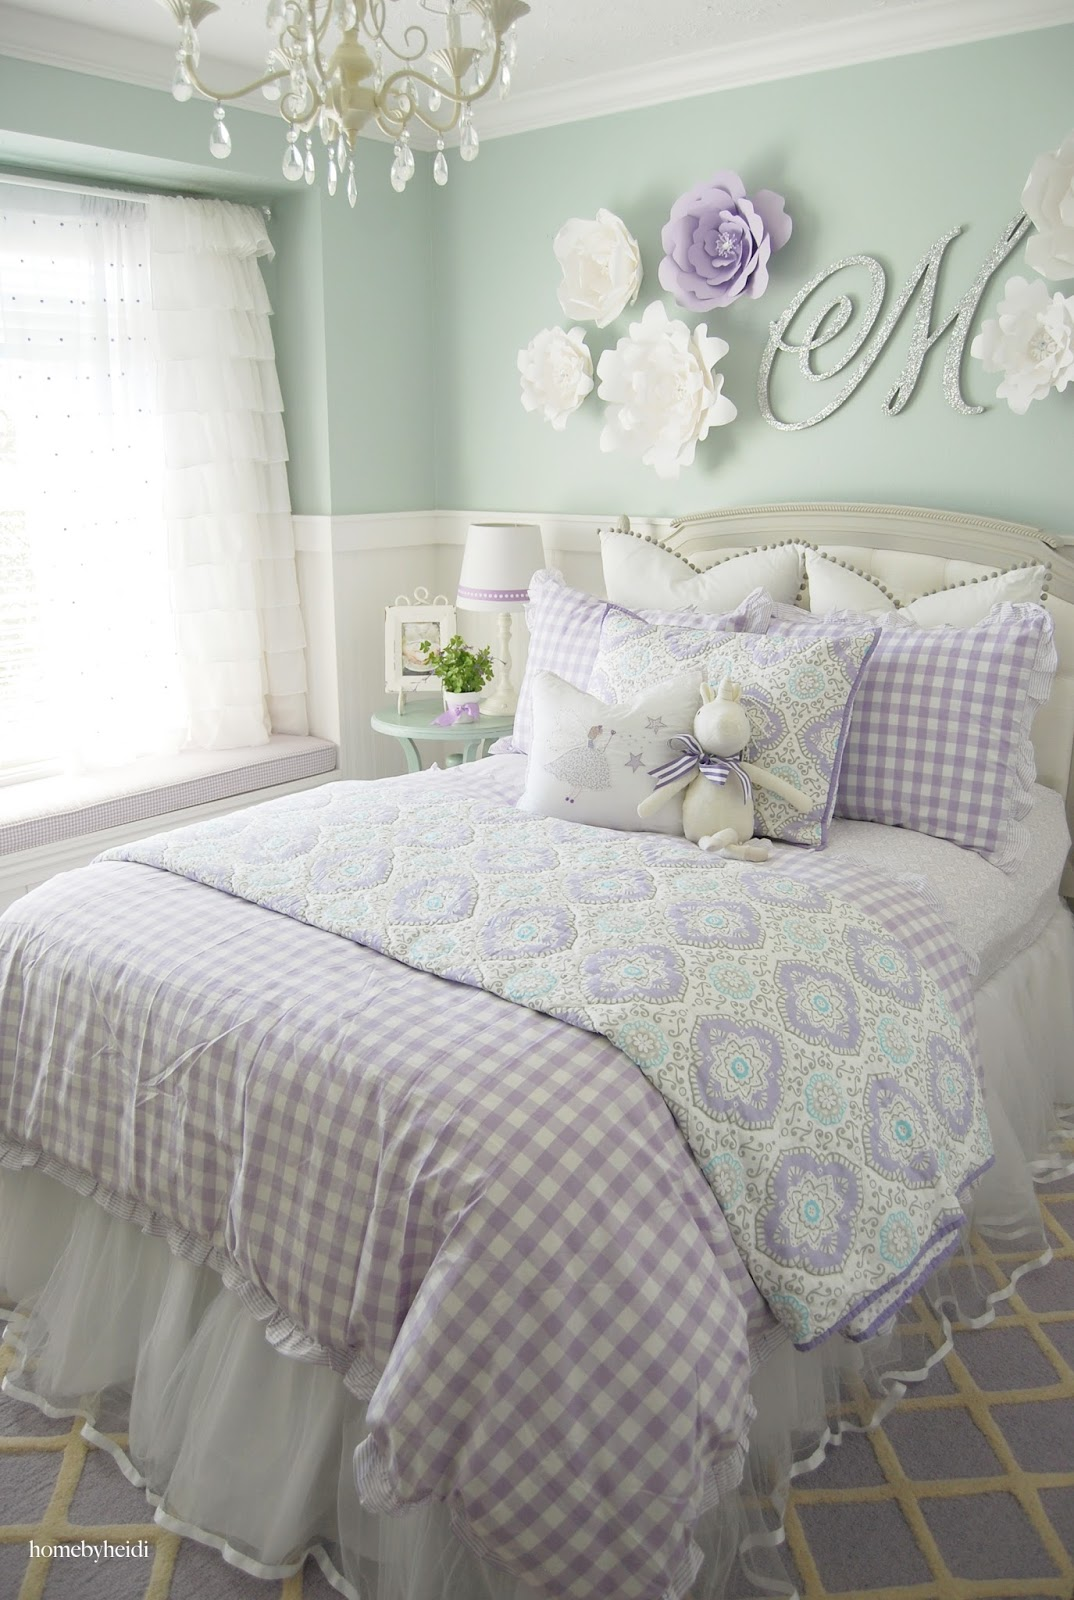 Turns! Home decor teen rooms join. And